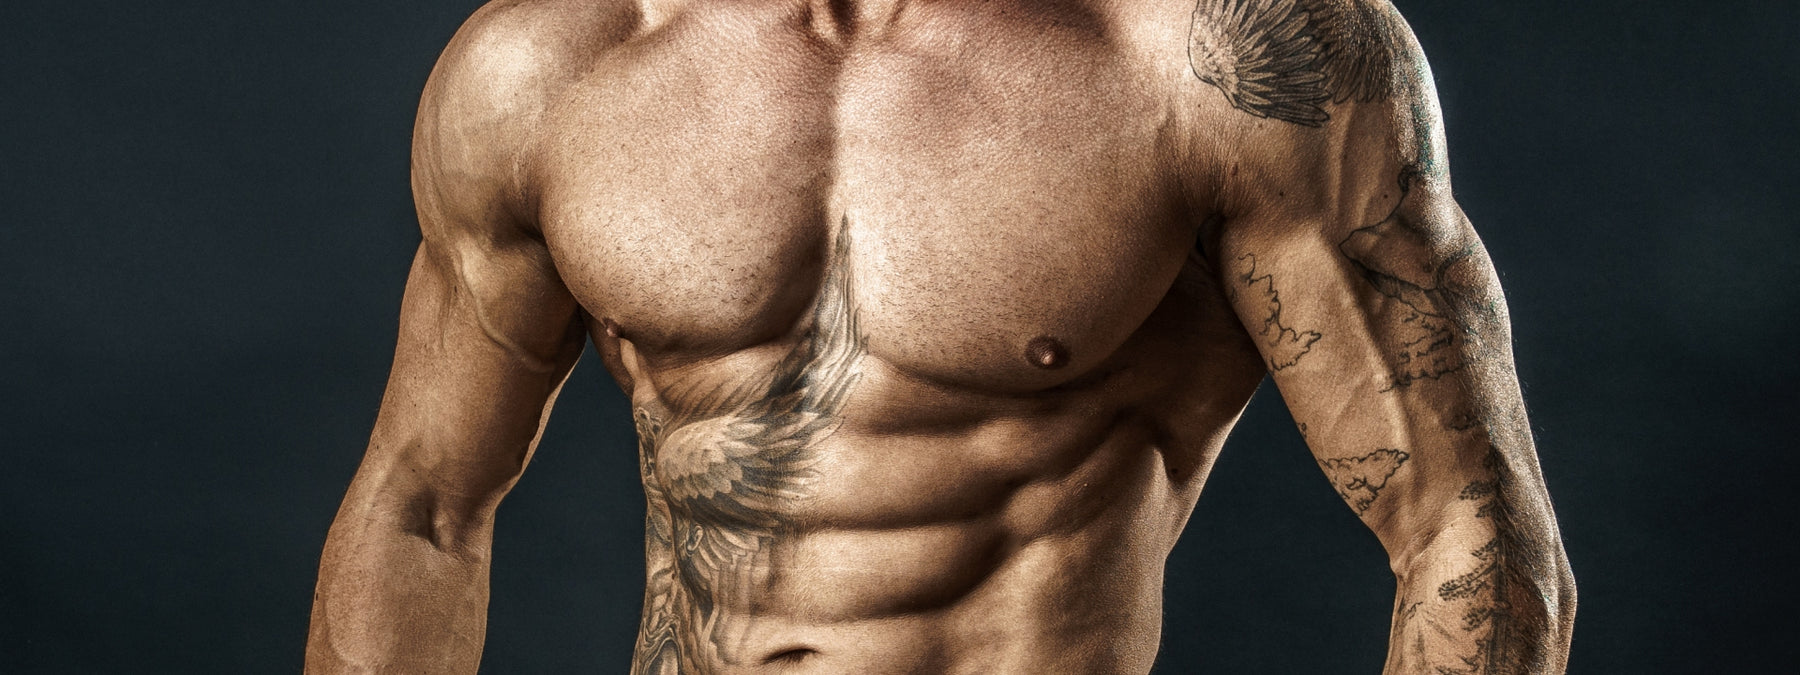 Finding the Best Fat Burner